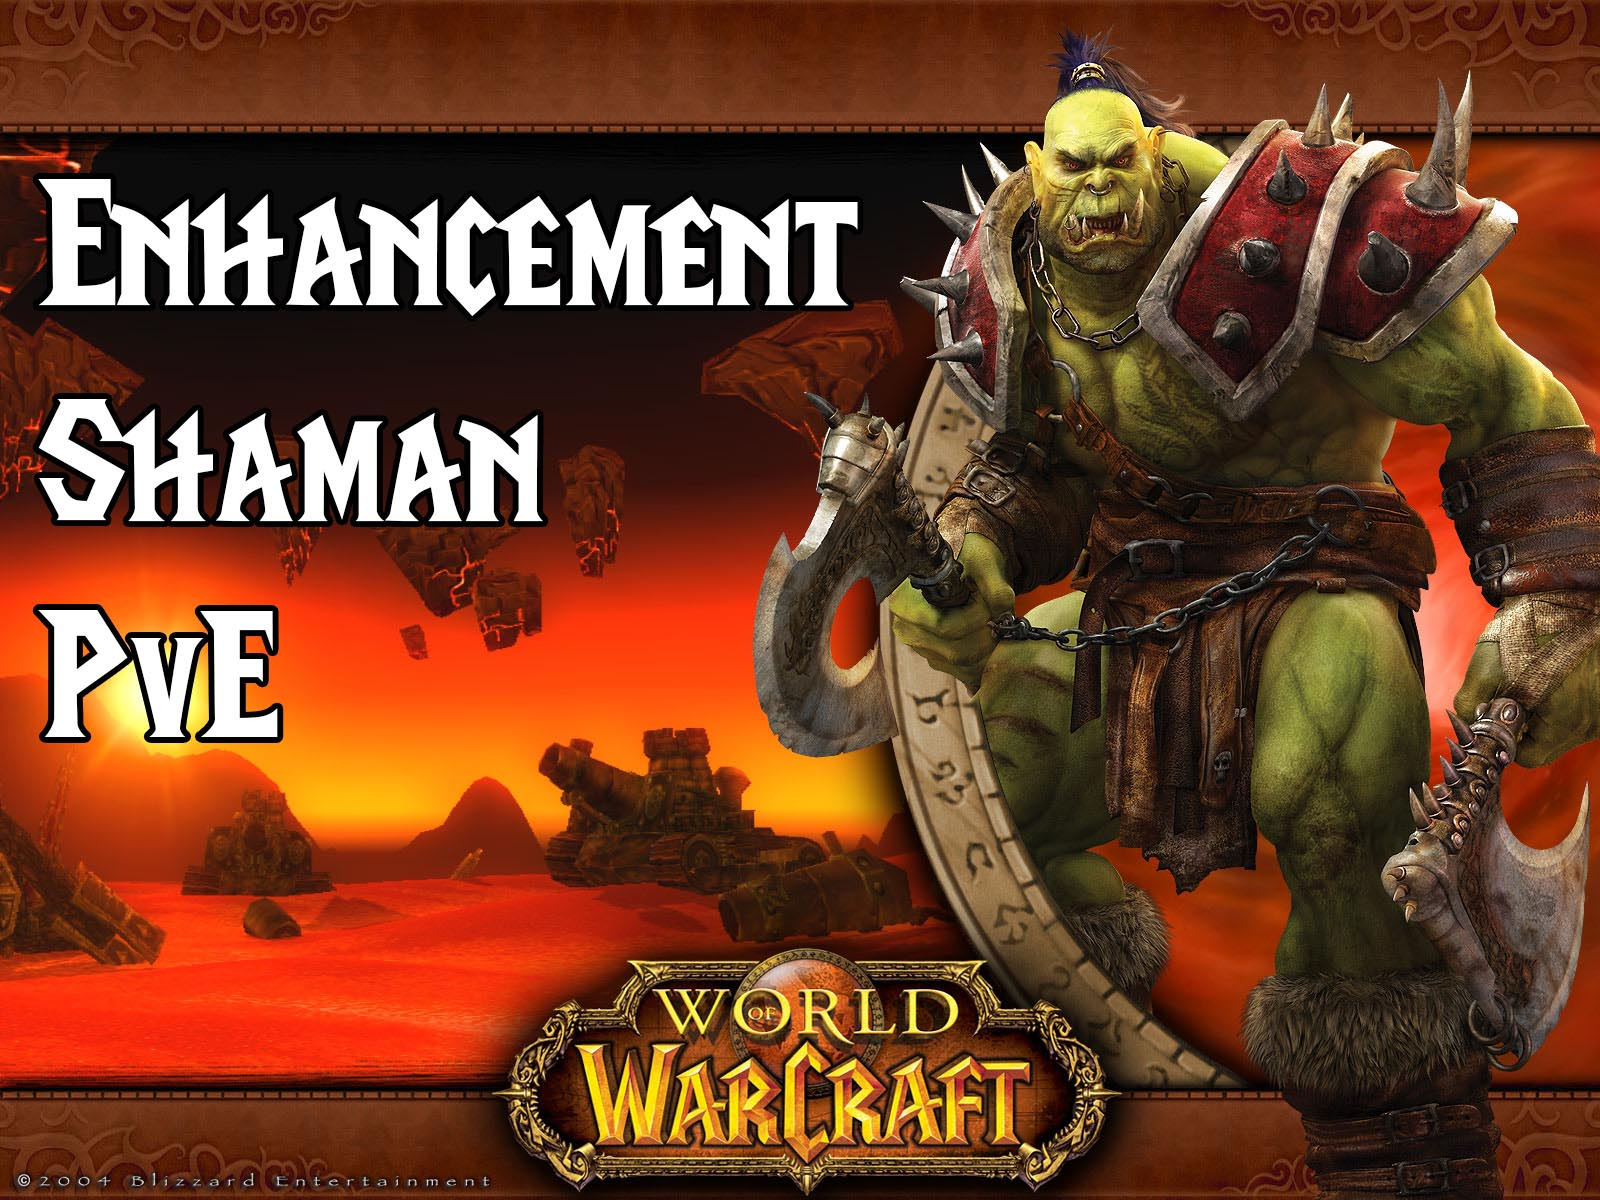 Wow Classic Pve Enhancement Shaman Guide 1.jpg